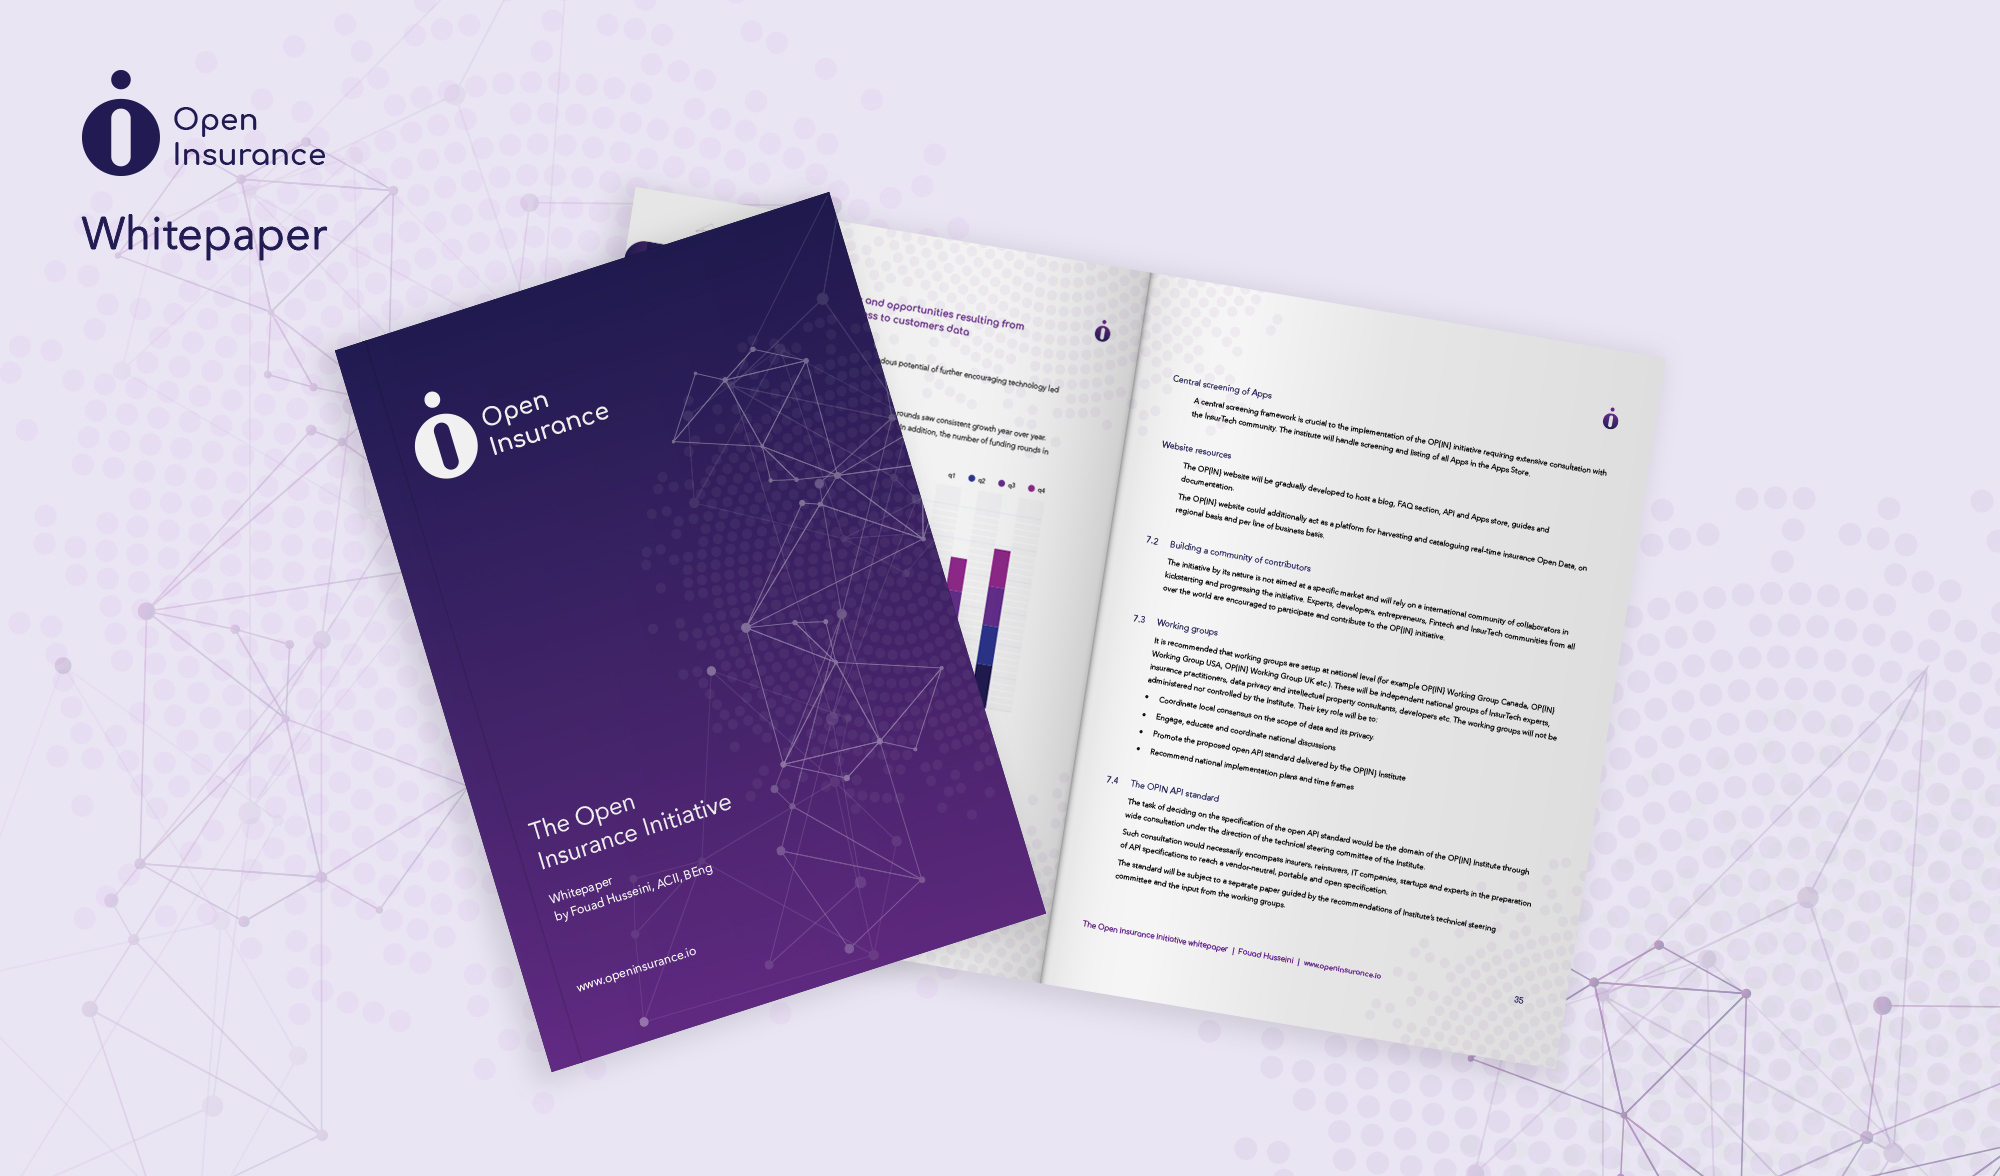 open insurance initiative whitepaper